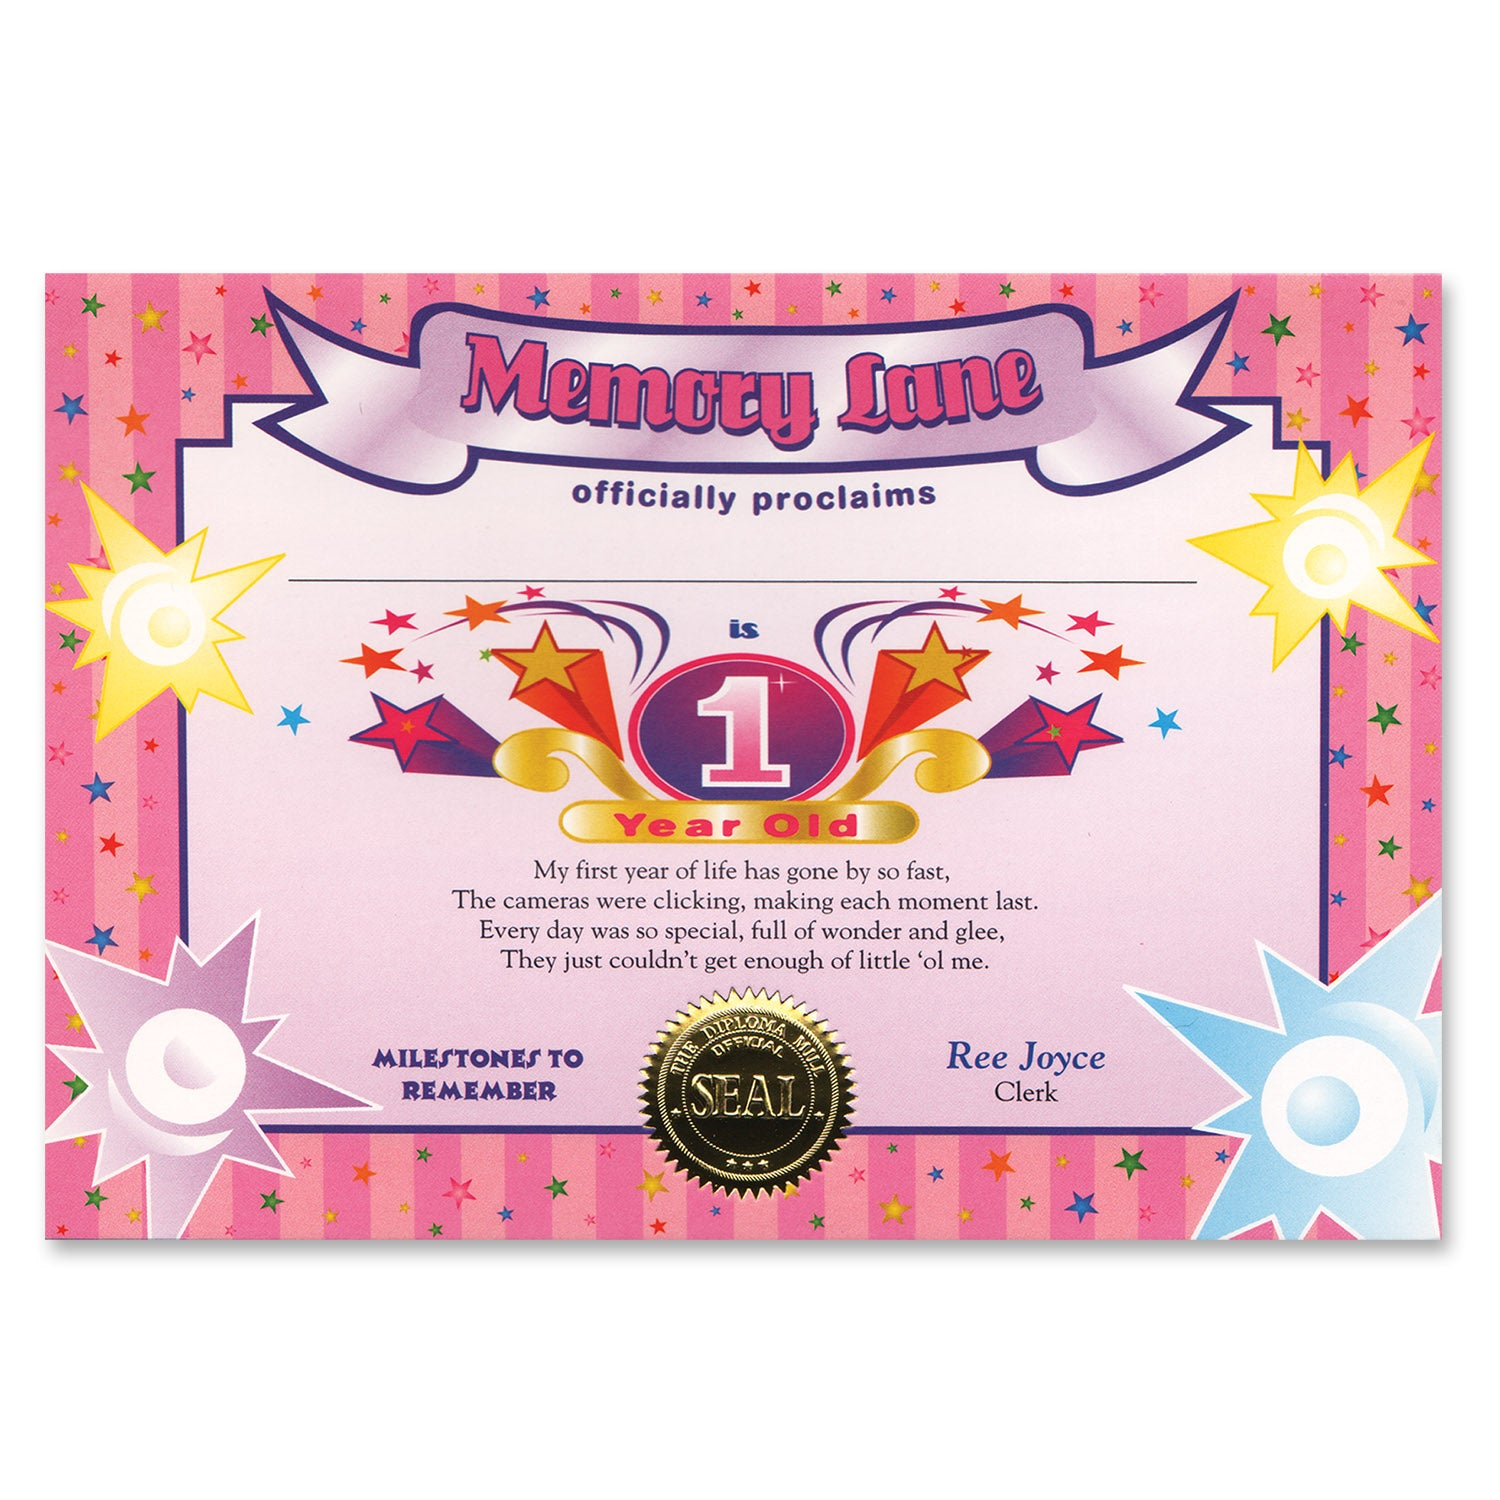 1 Year Old (Girl) Certificate by Beistle - 1st Birthday Party Decorations